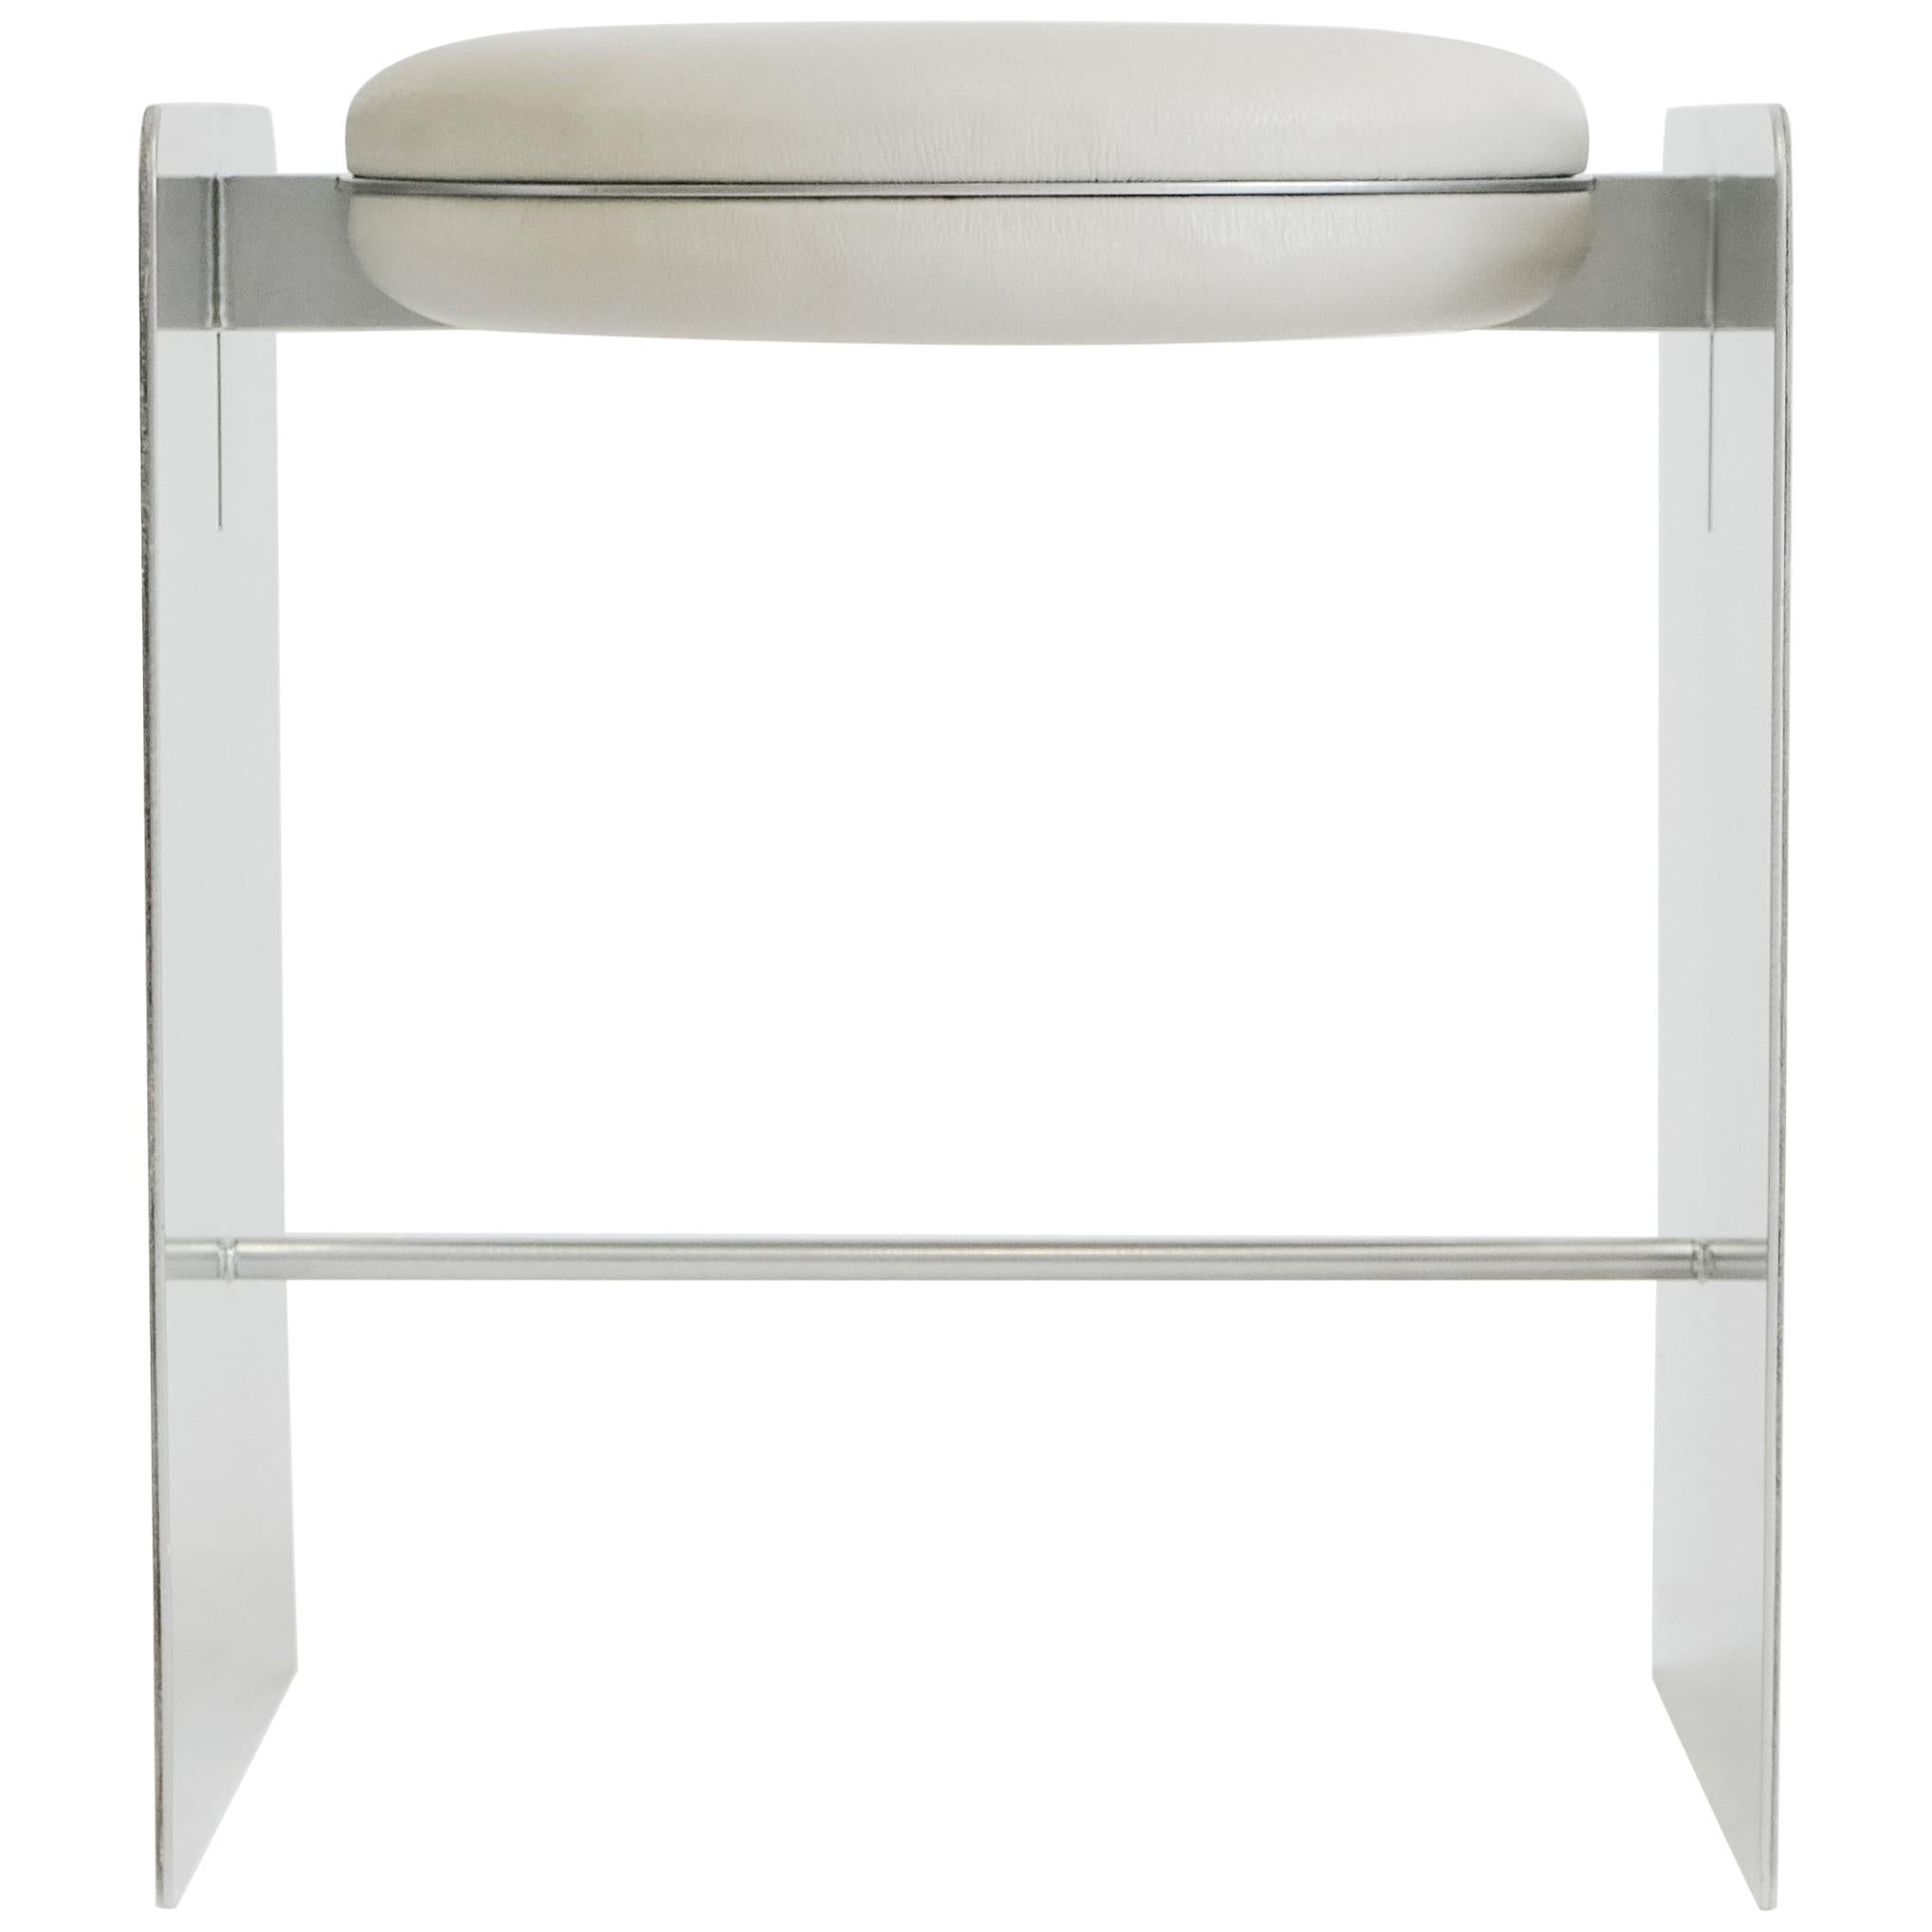 Building Blocks, Geometric Double Duty Upholstered Metal Side Table or Stool